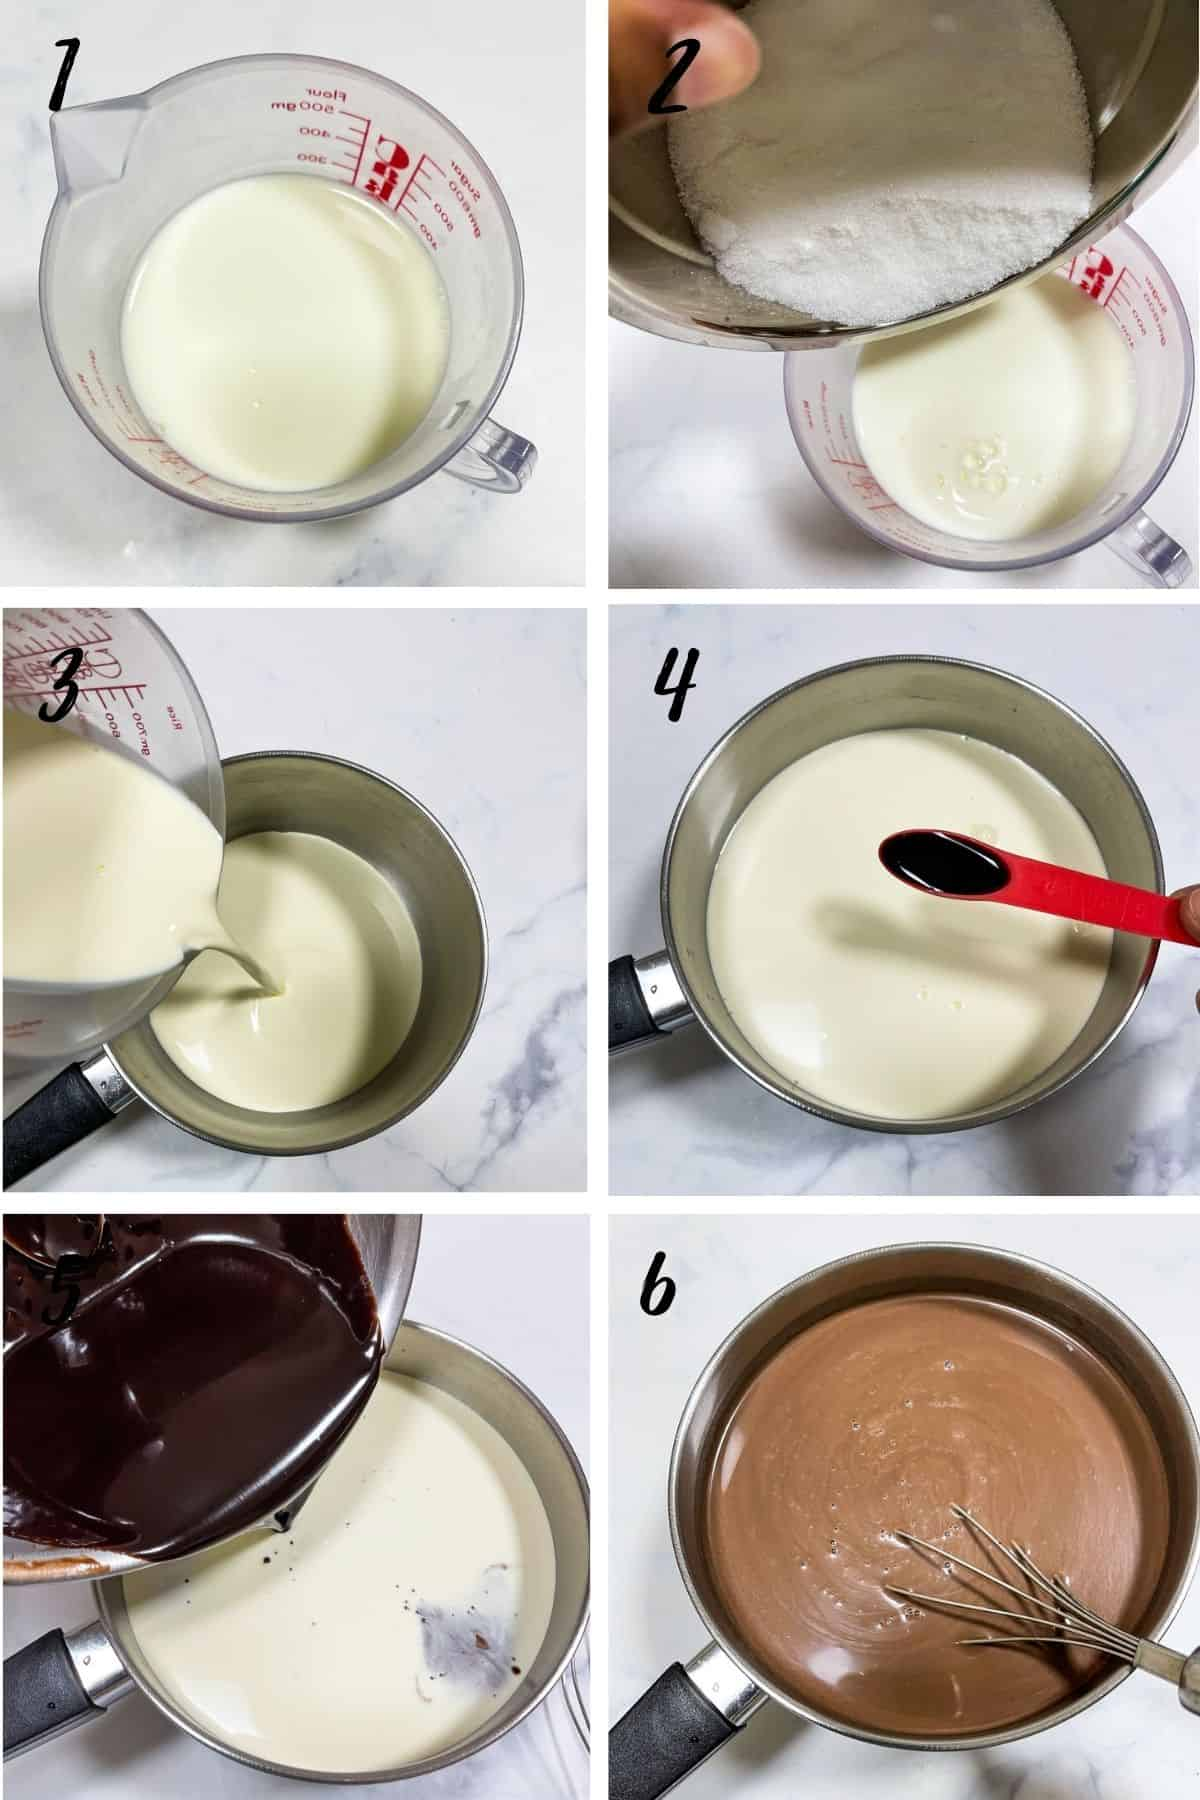 A poster of 6 images showing how to make chocolate ice cream base for ice cream maker